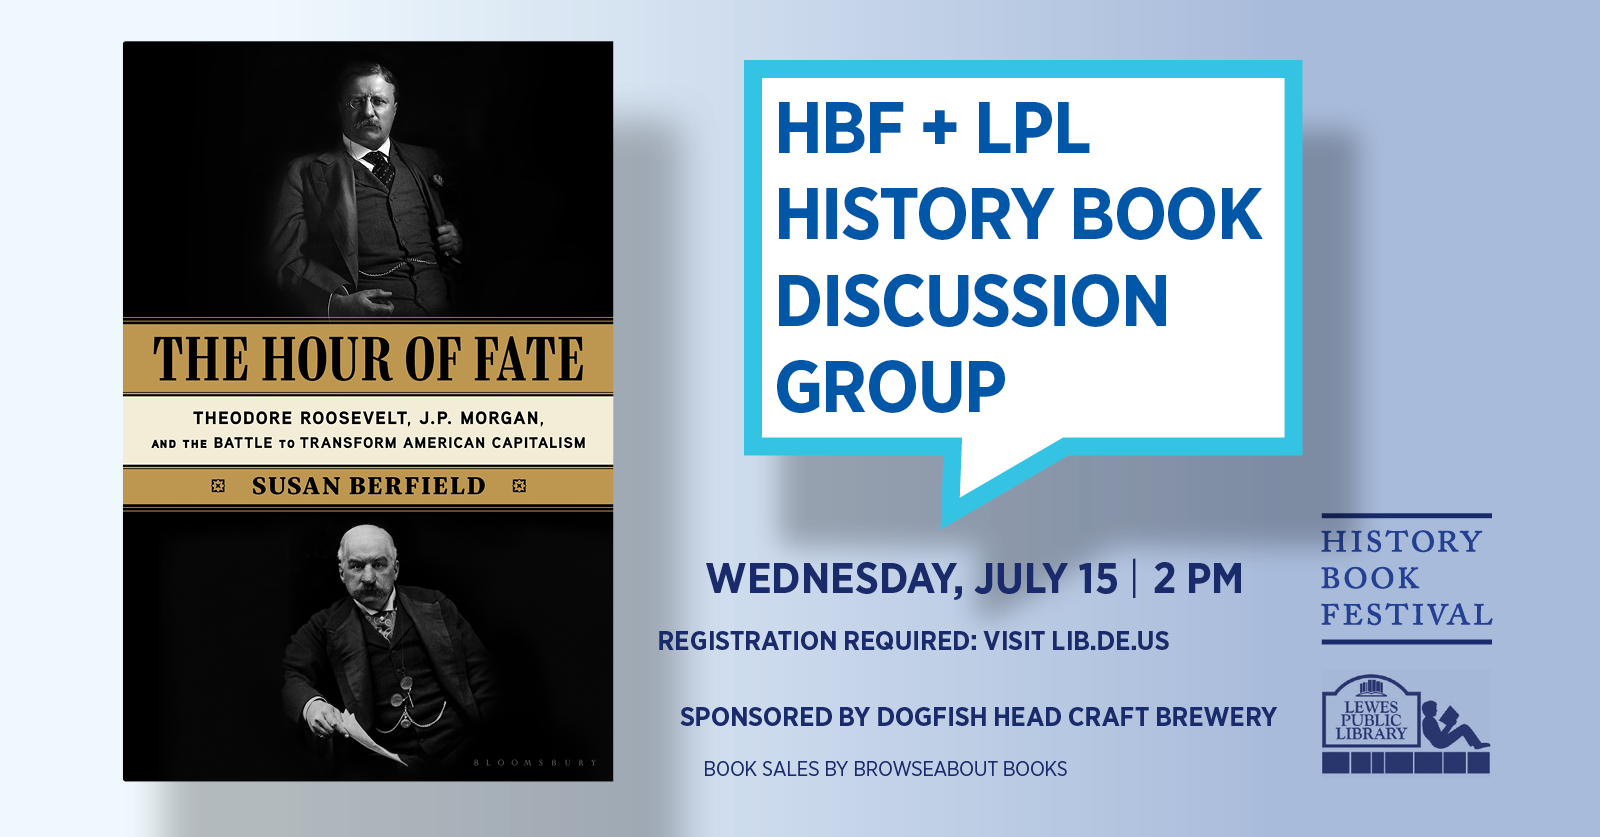 History Book Festival presents Susan Berfield | The Hour of Fate